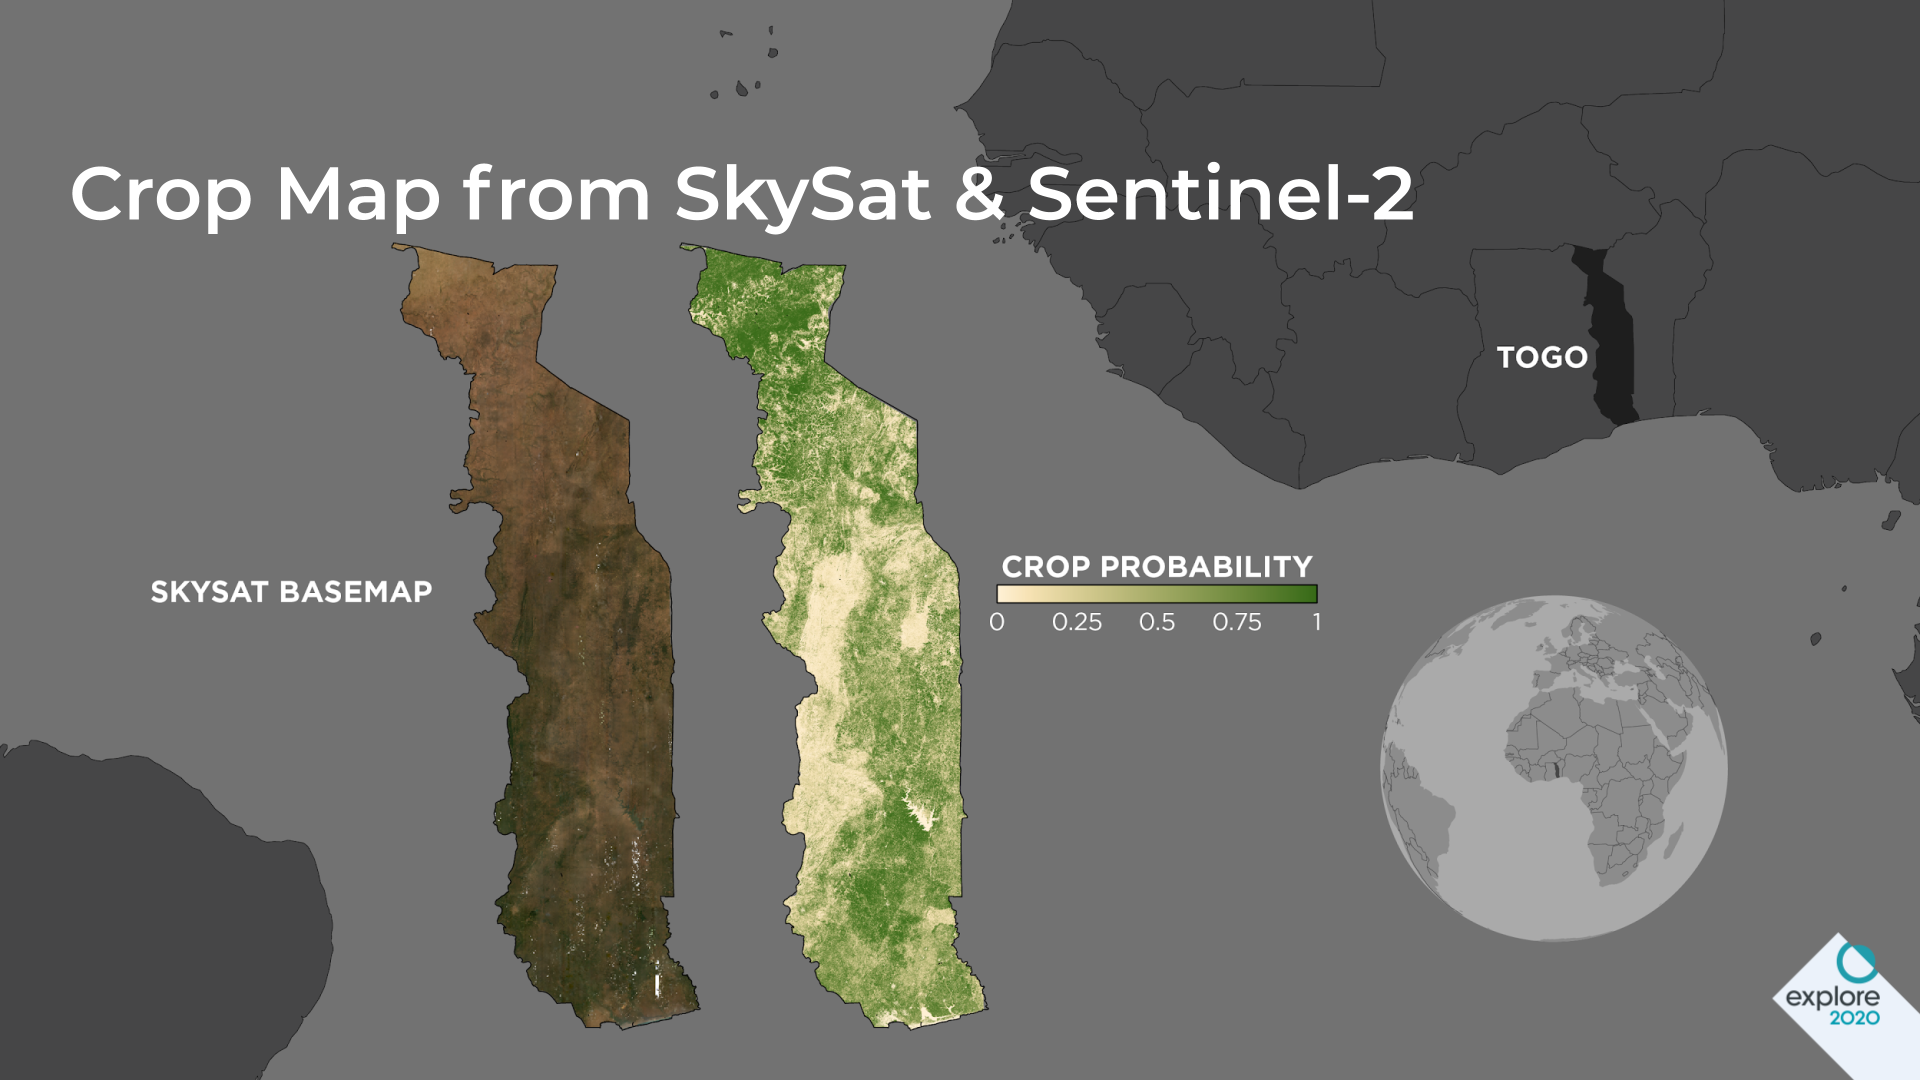 Country-wide cropland probability map and Planet's SkySat Basemap.